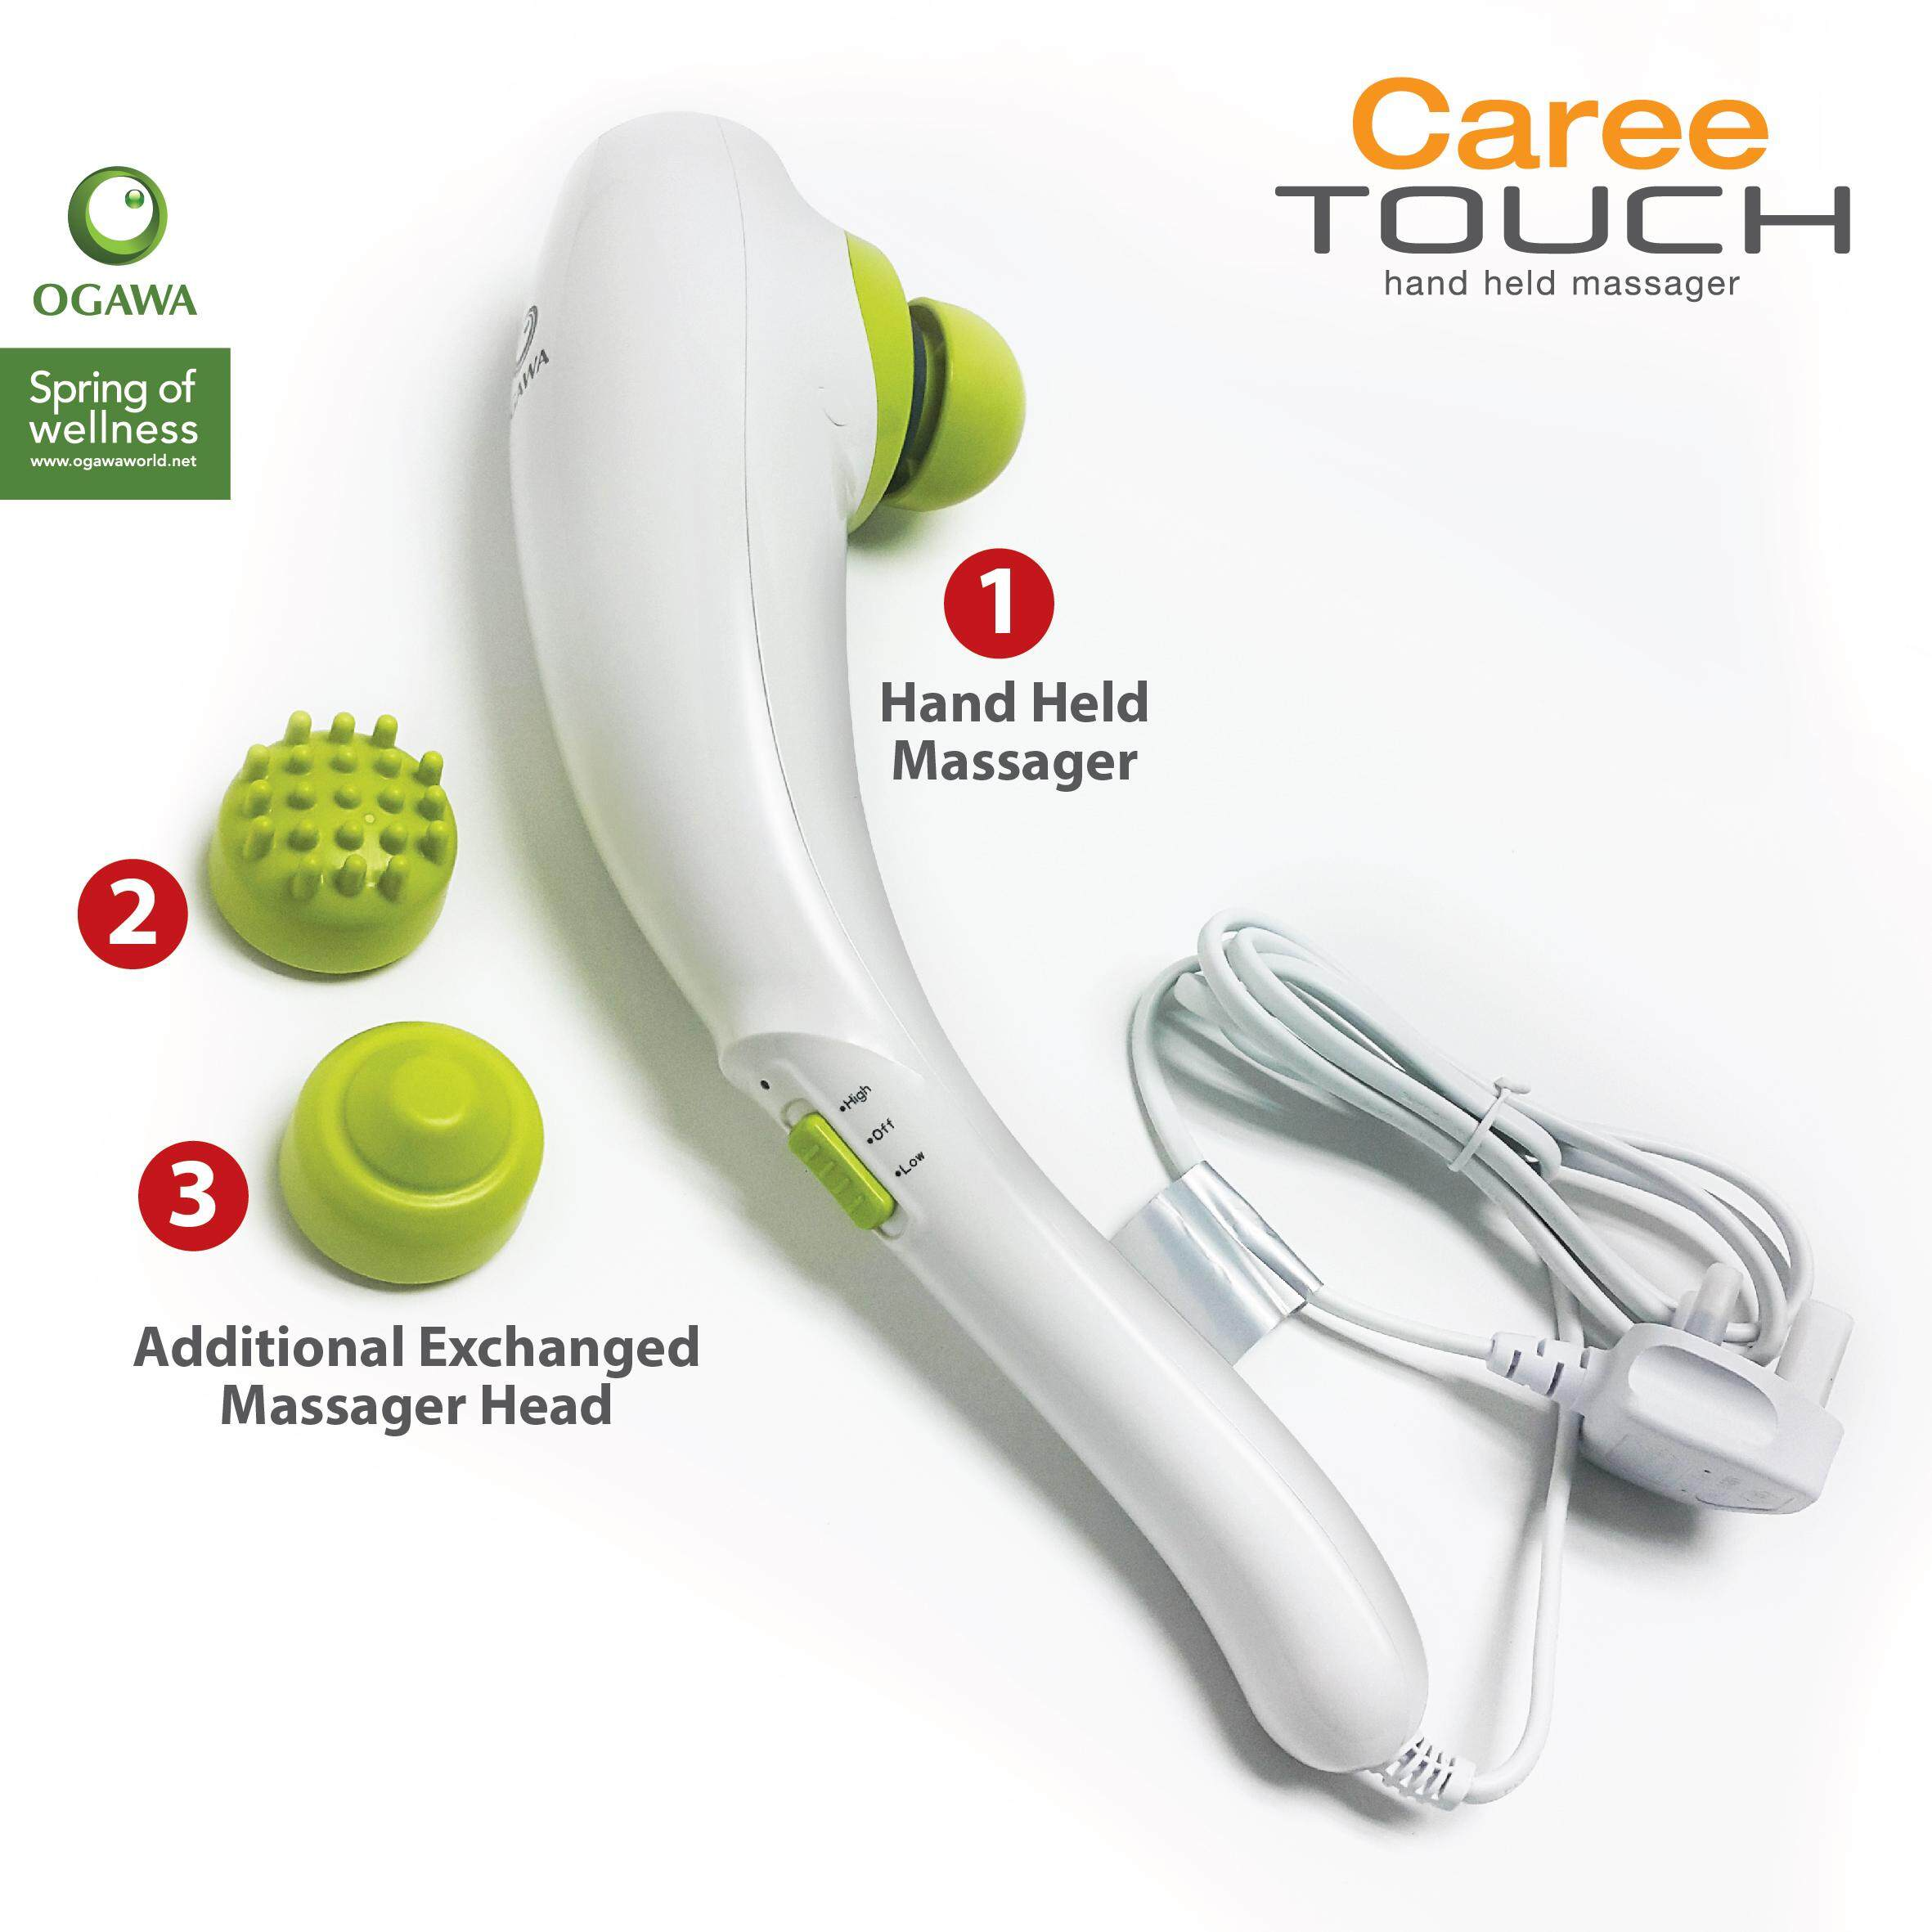 Caree Touch-01.jpg